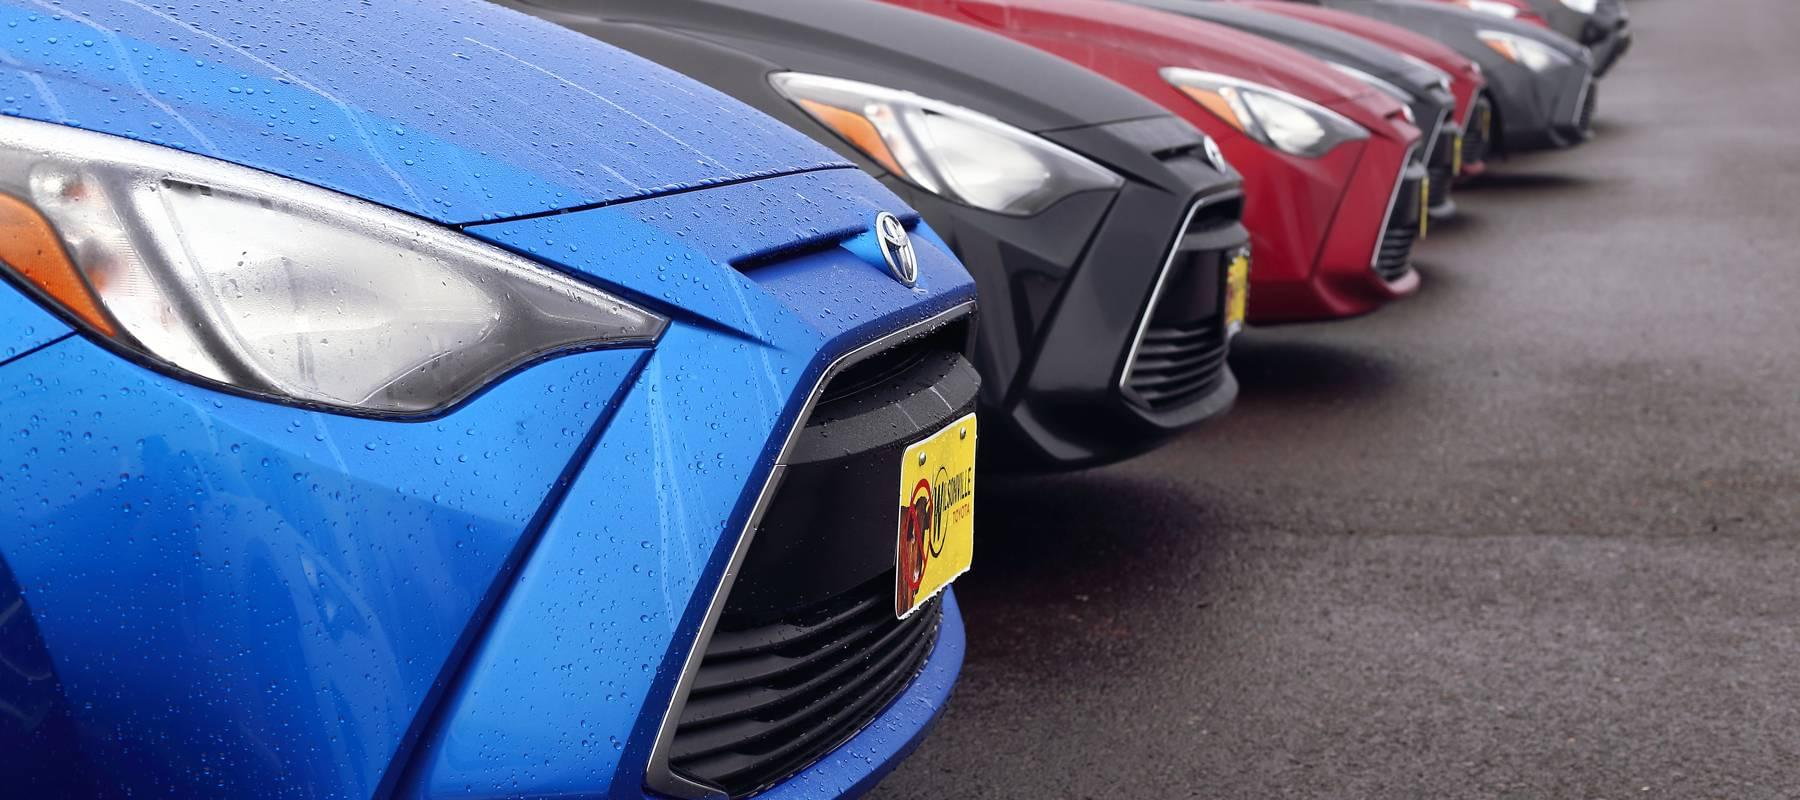 Top 5 Reasons to Buy a Used Car at Wilsonville Toyota